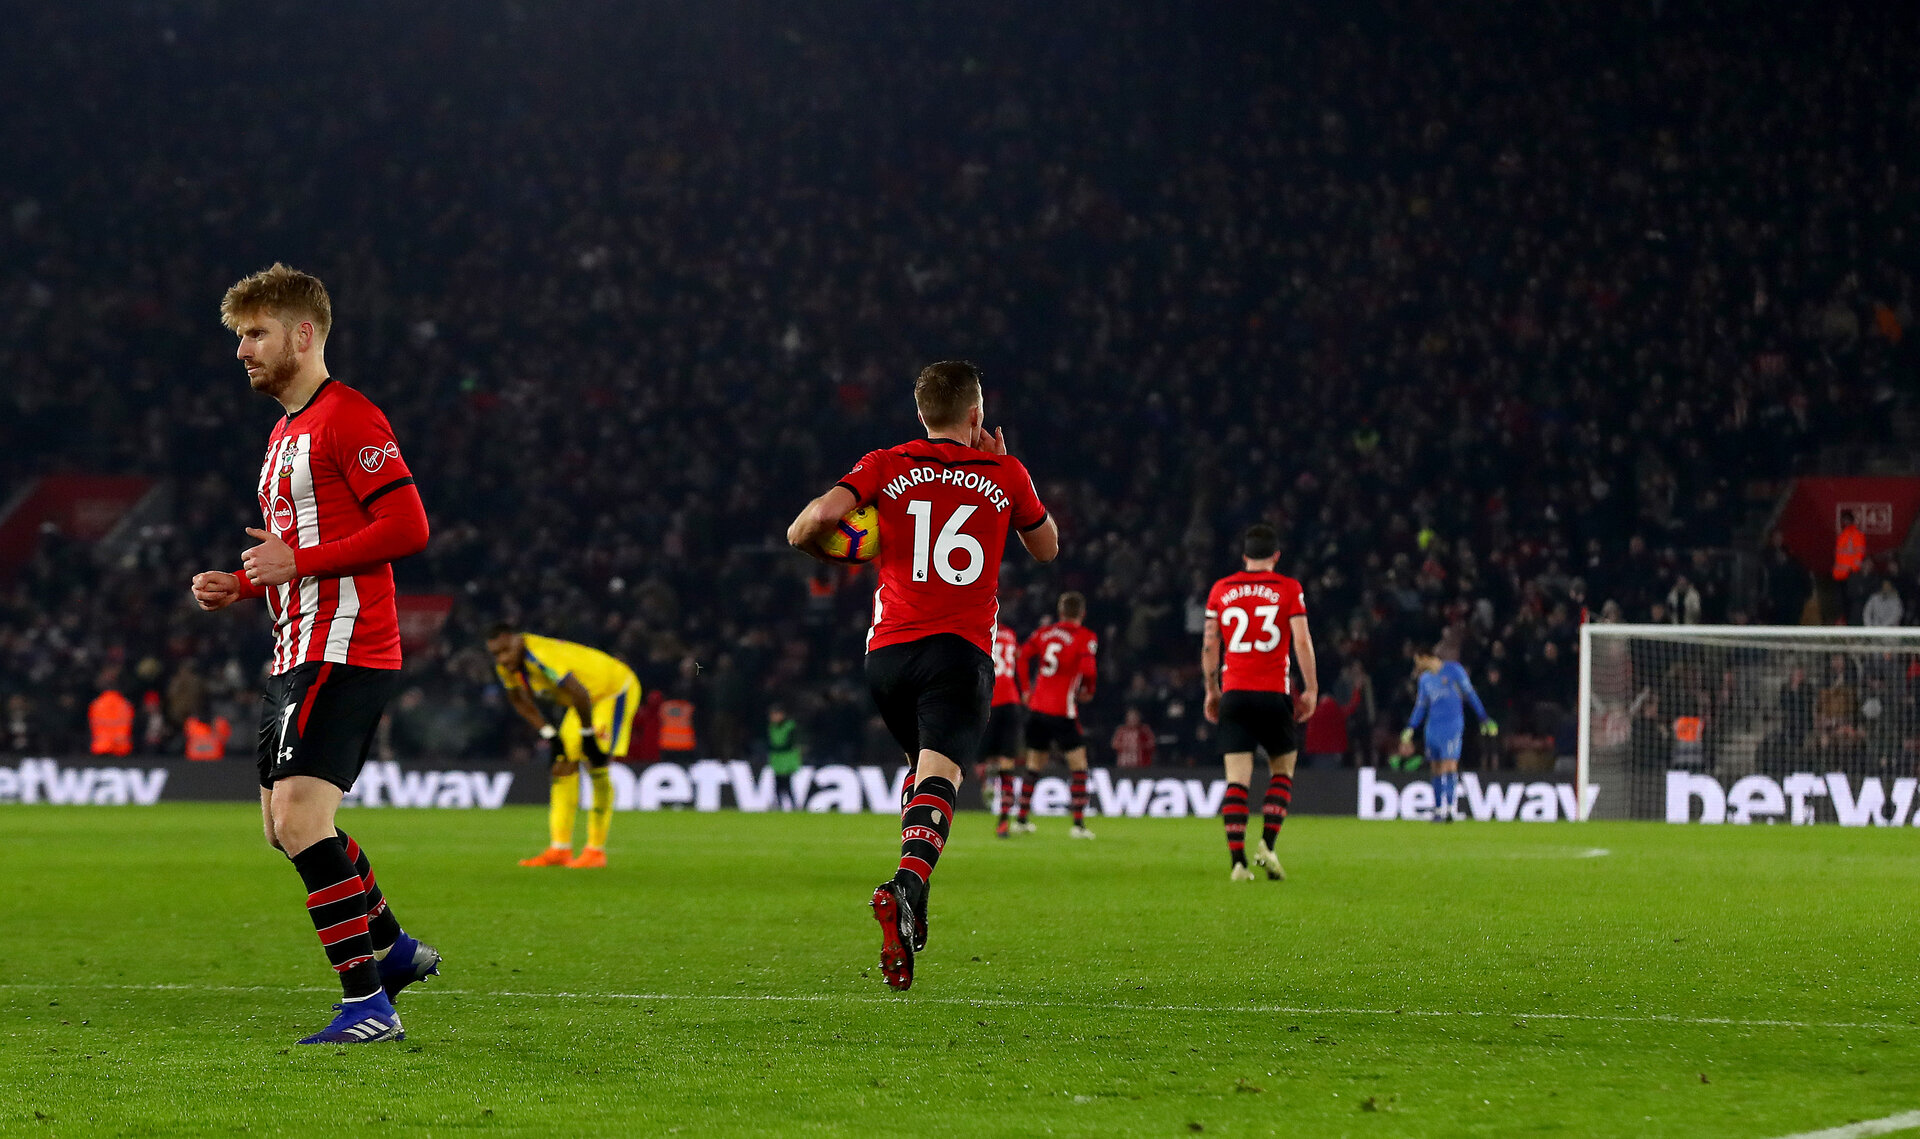 SOUTHAMPTON, ENGLAND - JANUARY 30: James Ward-Prowse of Southampton celebrates during the Premier League match between Southampton FC and Crystal Palace at St Mary's Stadium on January 30, 2019 in Southampton, United Kingdom. (Photo by Matt Watson/Southampton FC via Getty Images)